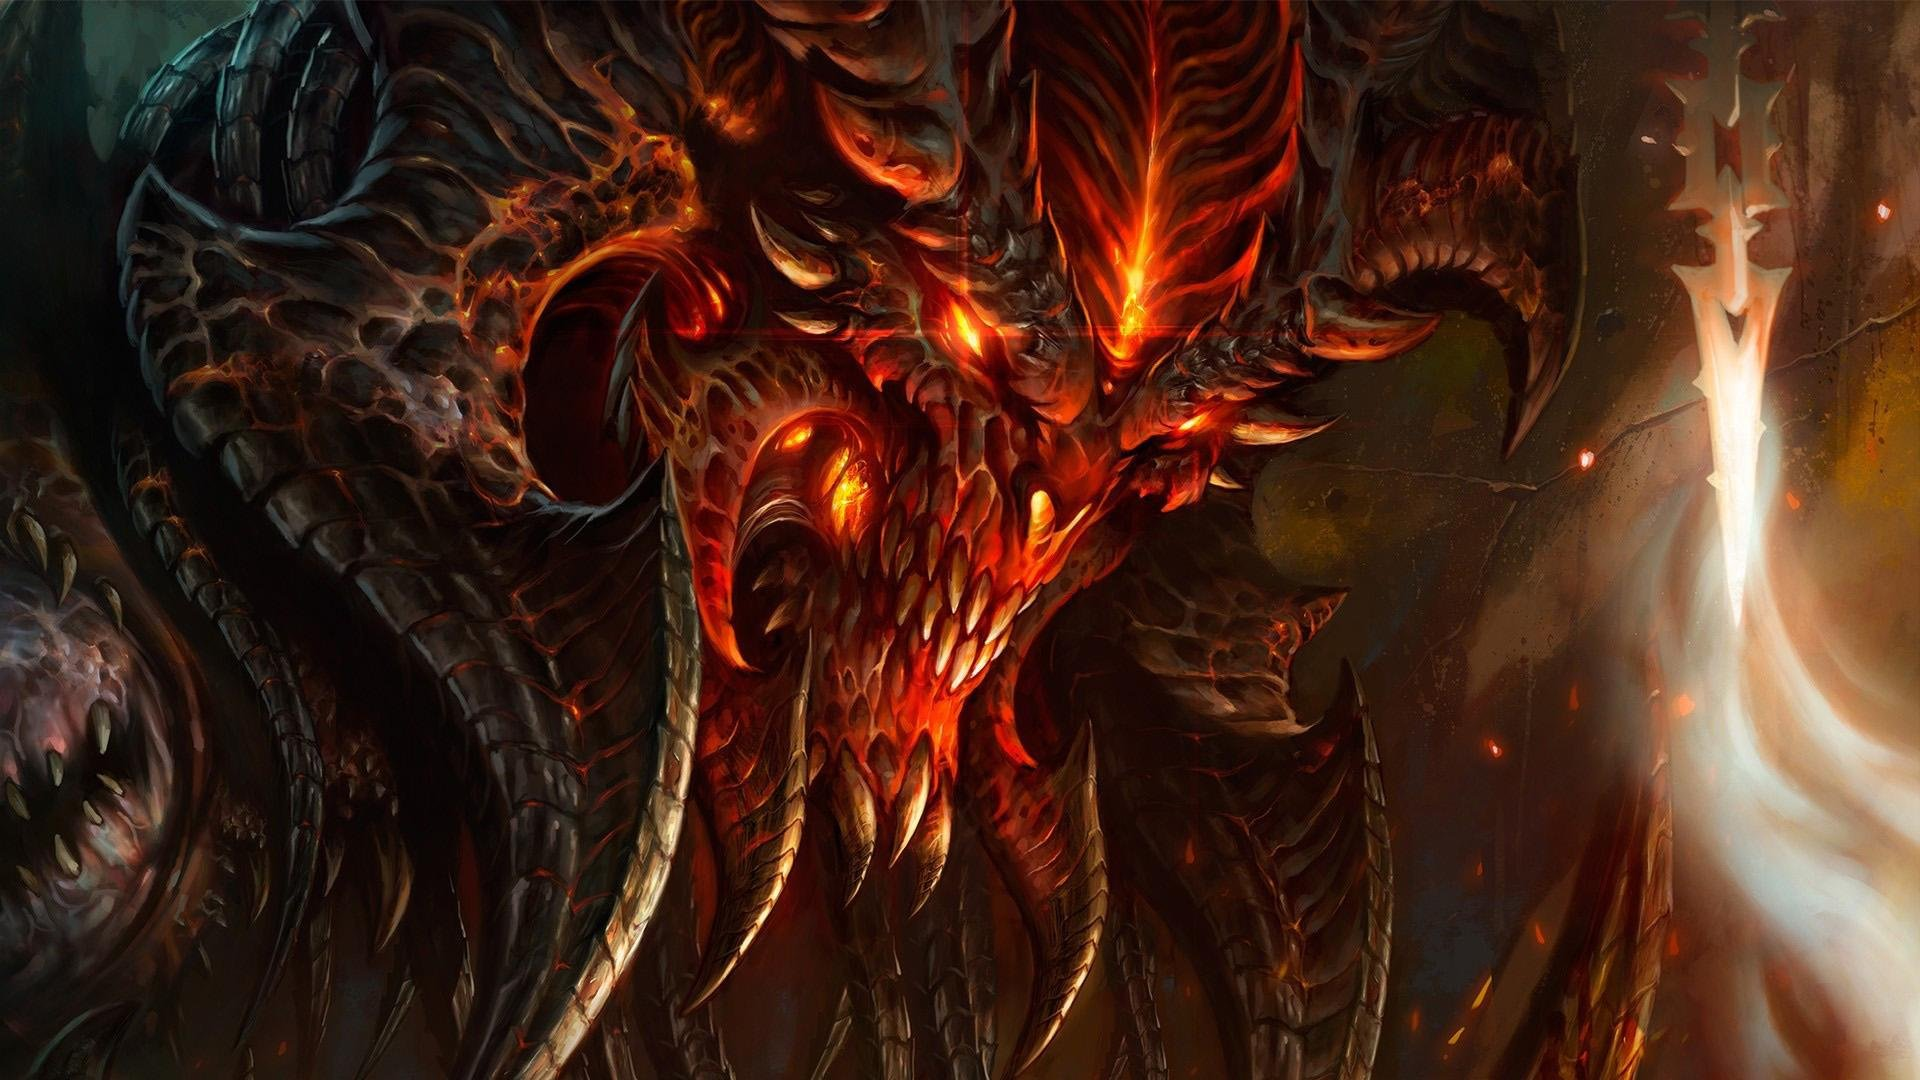 Blizzard wants to bring cross-platform play with Diablo 3